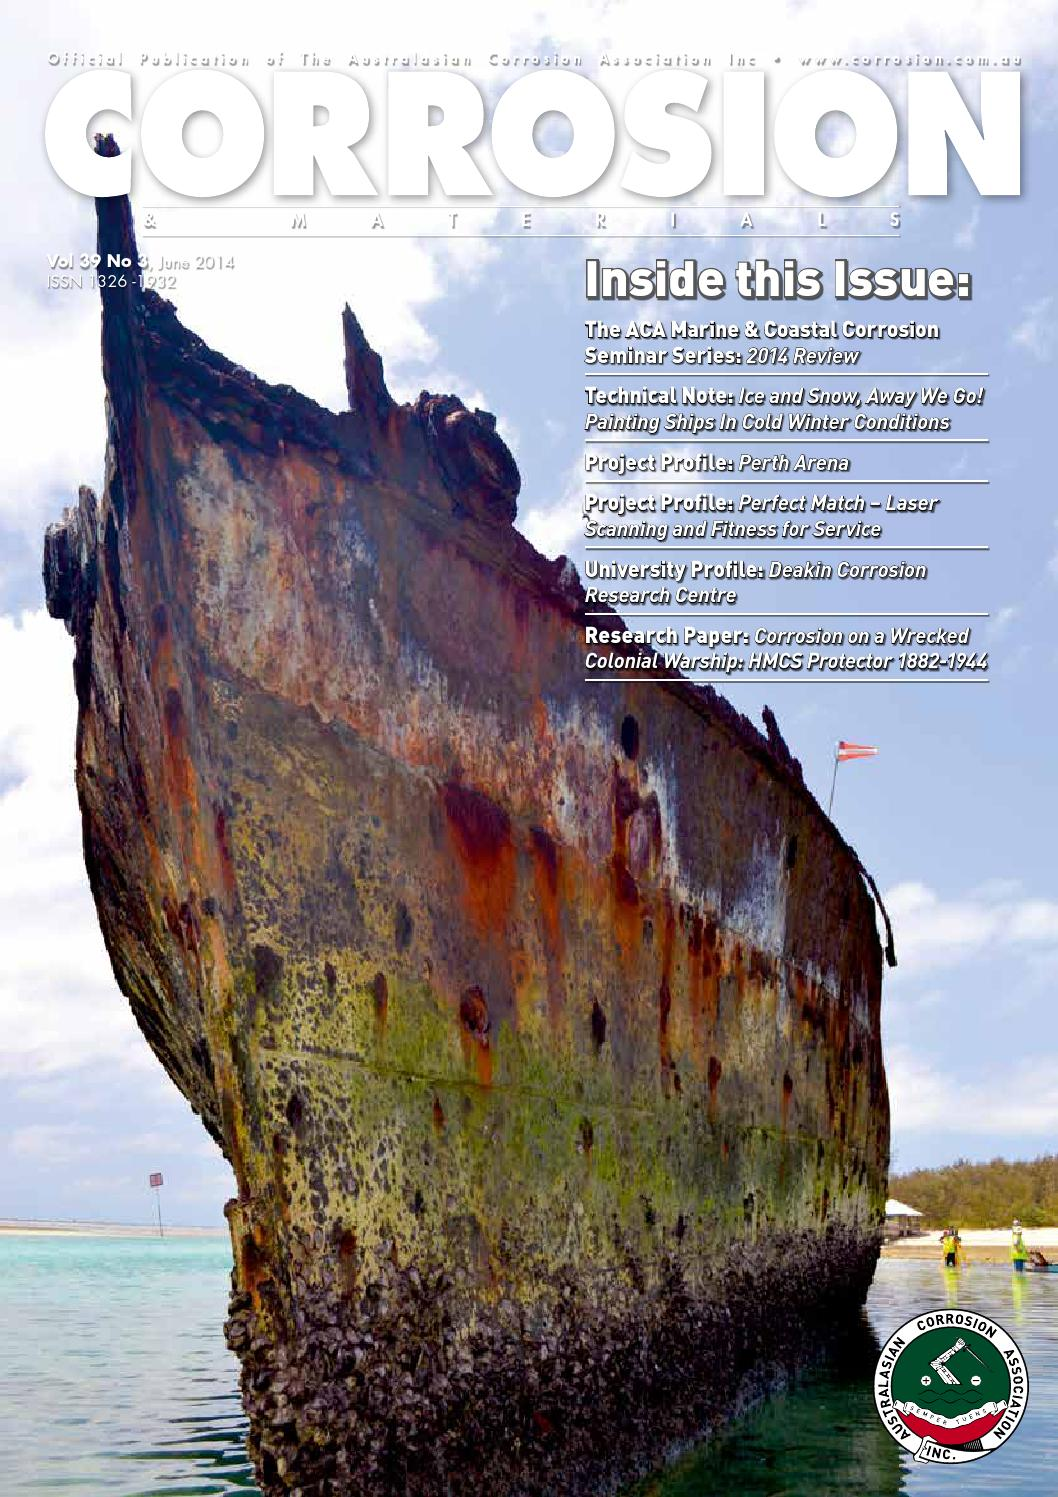 Corrosion Amp Materials June 2014 By Australasian Corrosion